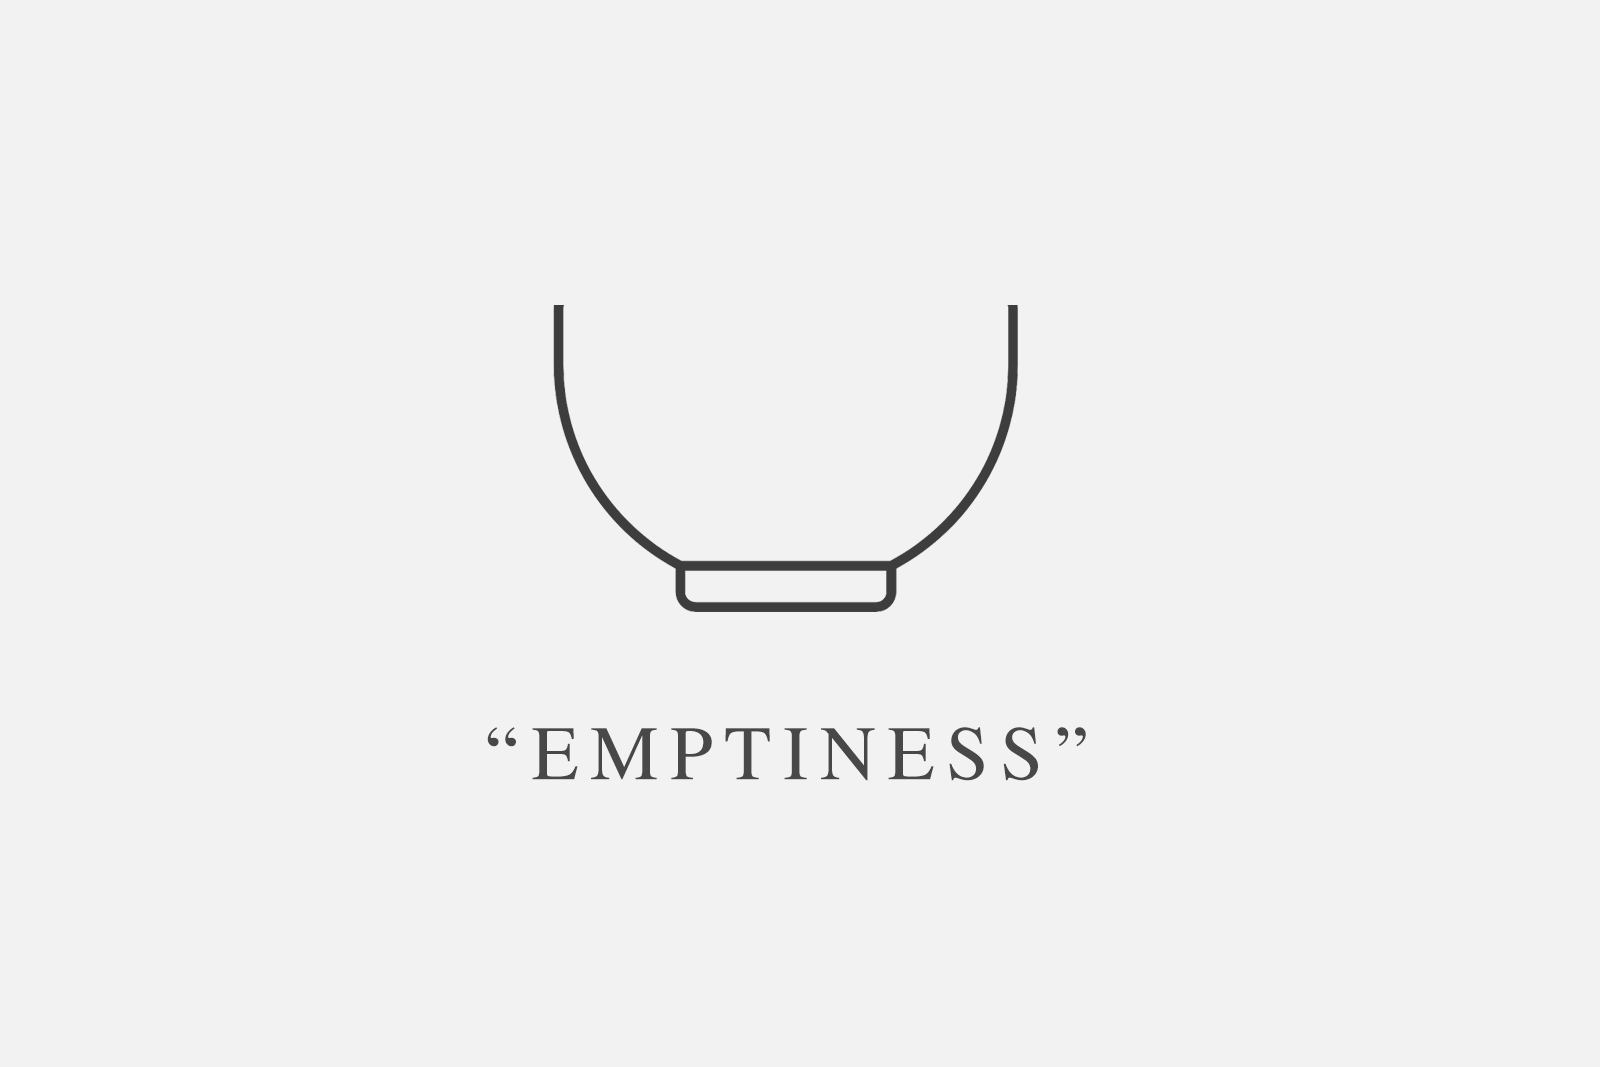 Emptiness as a vessel